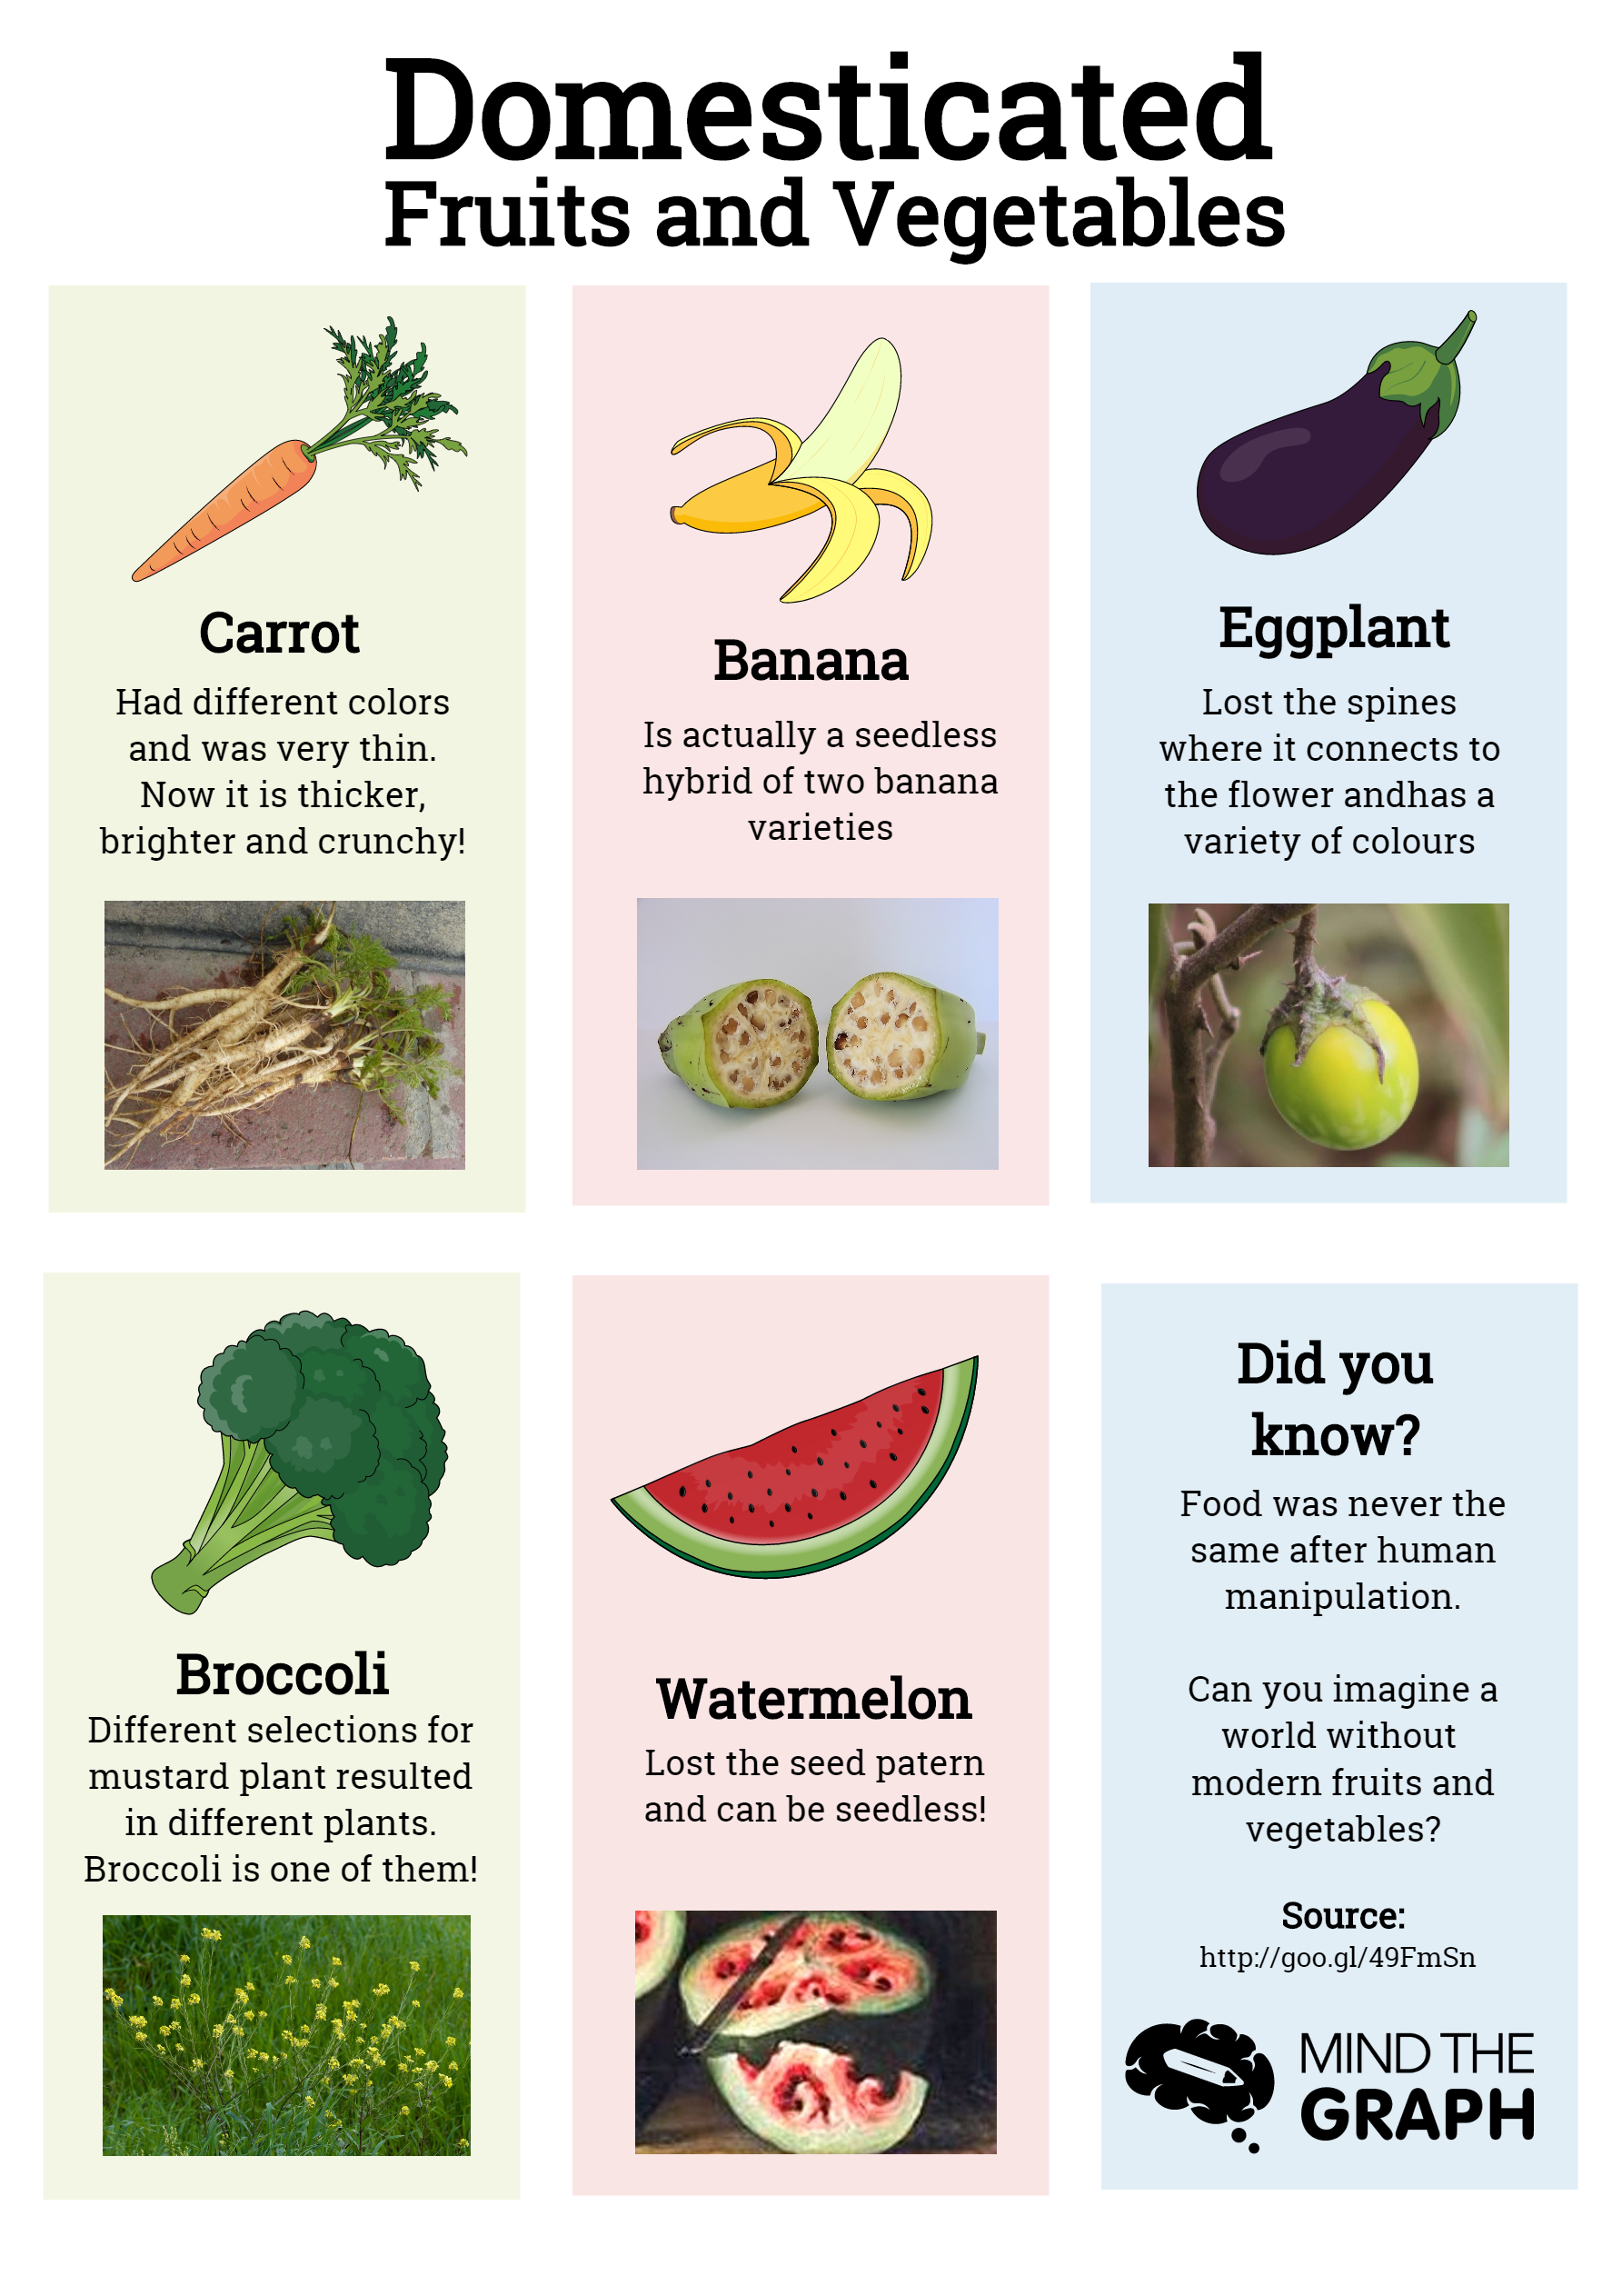 Domesticated fruits and vegetables